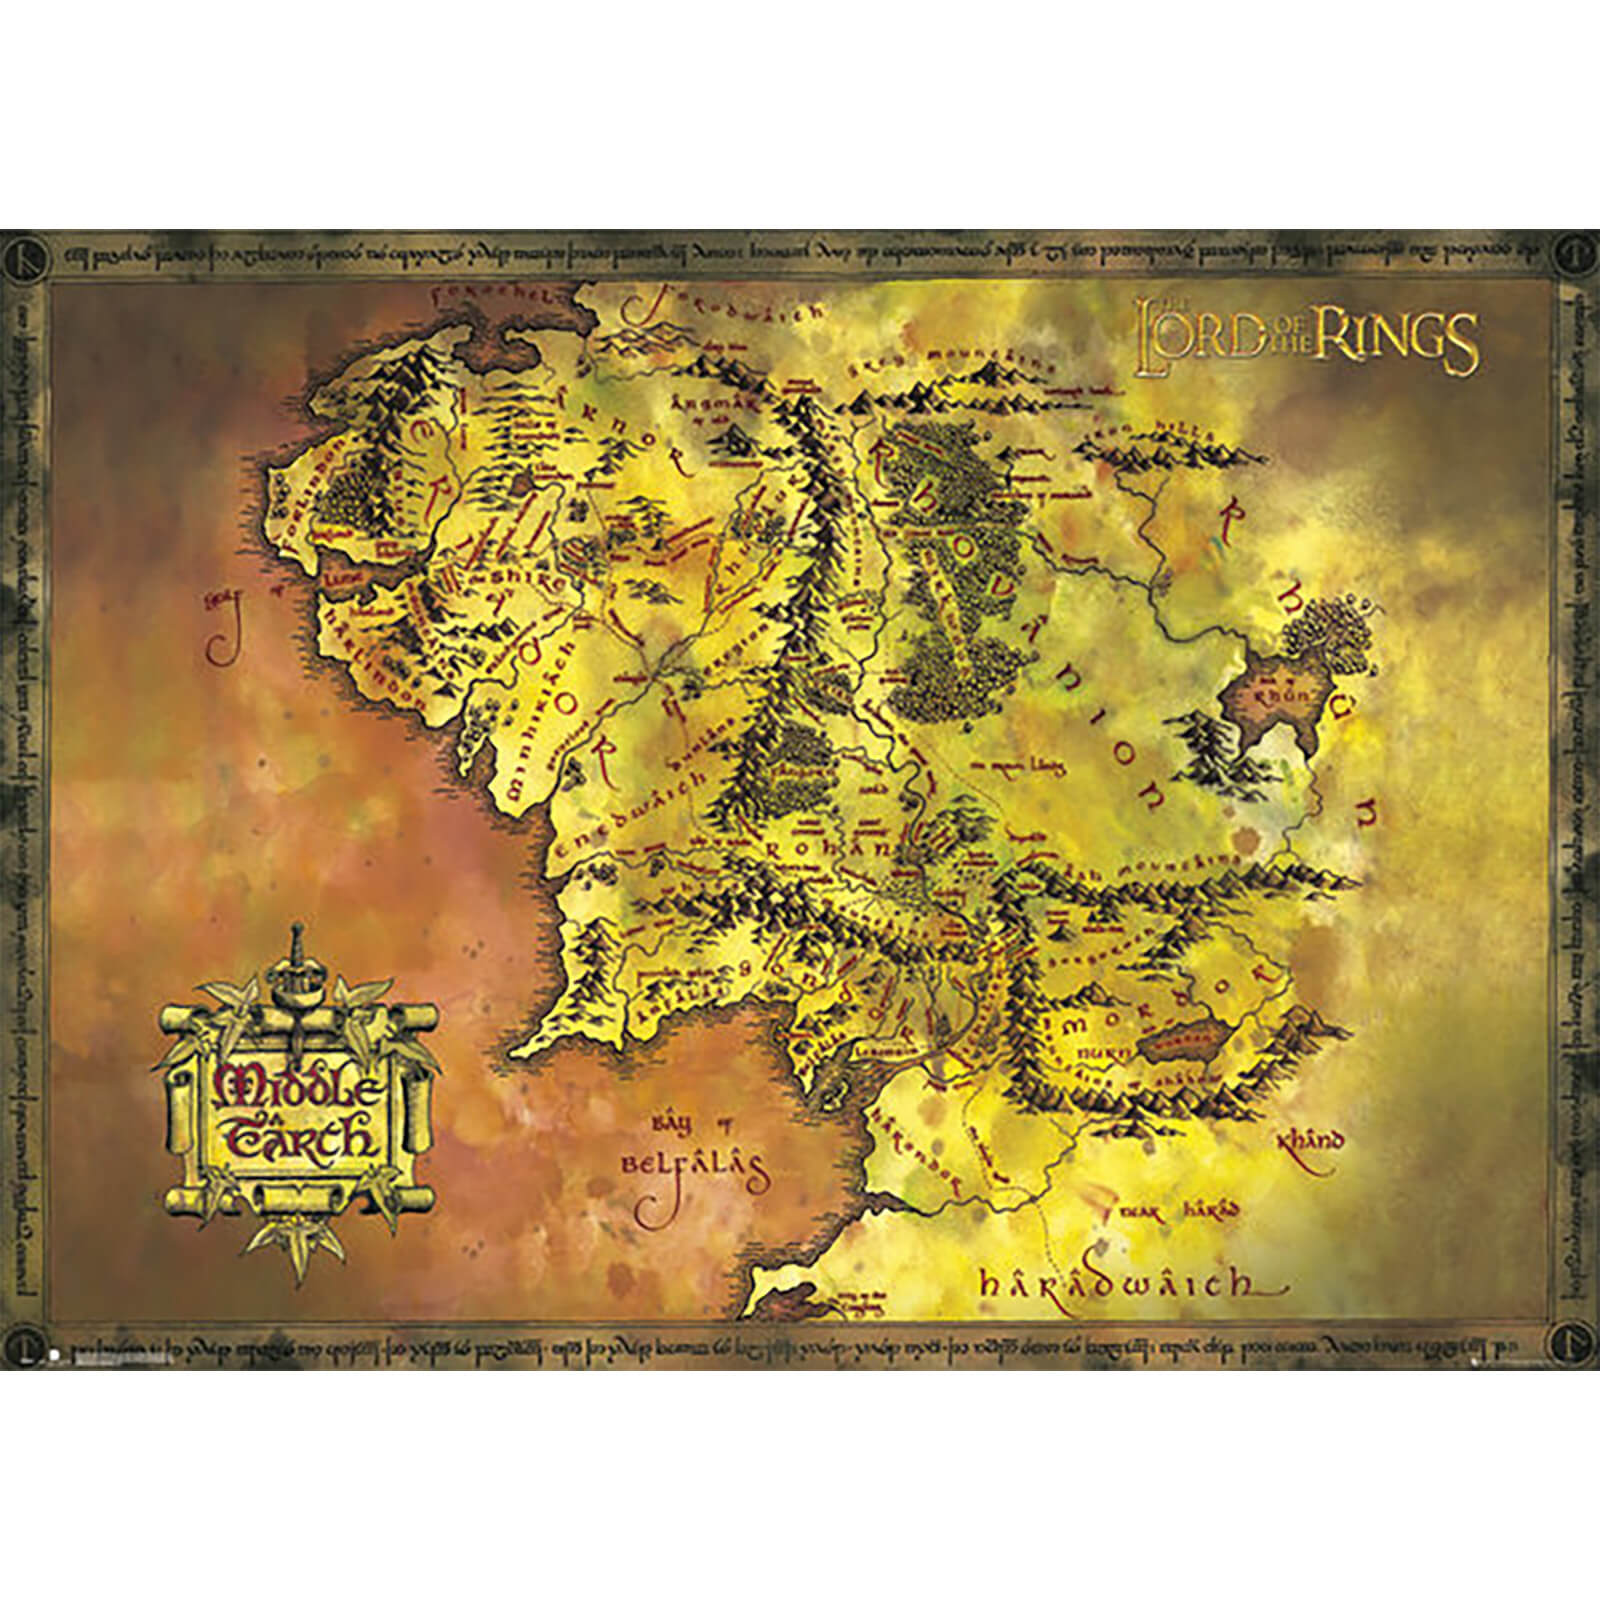 Lord of the Rings Classic Map - 100 x 140cm Giant Poster